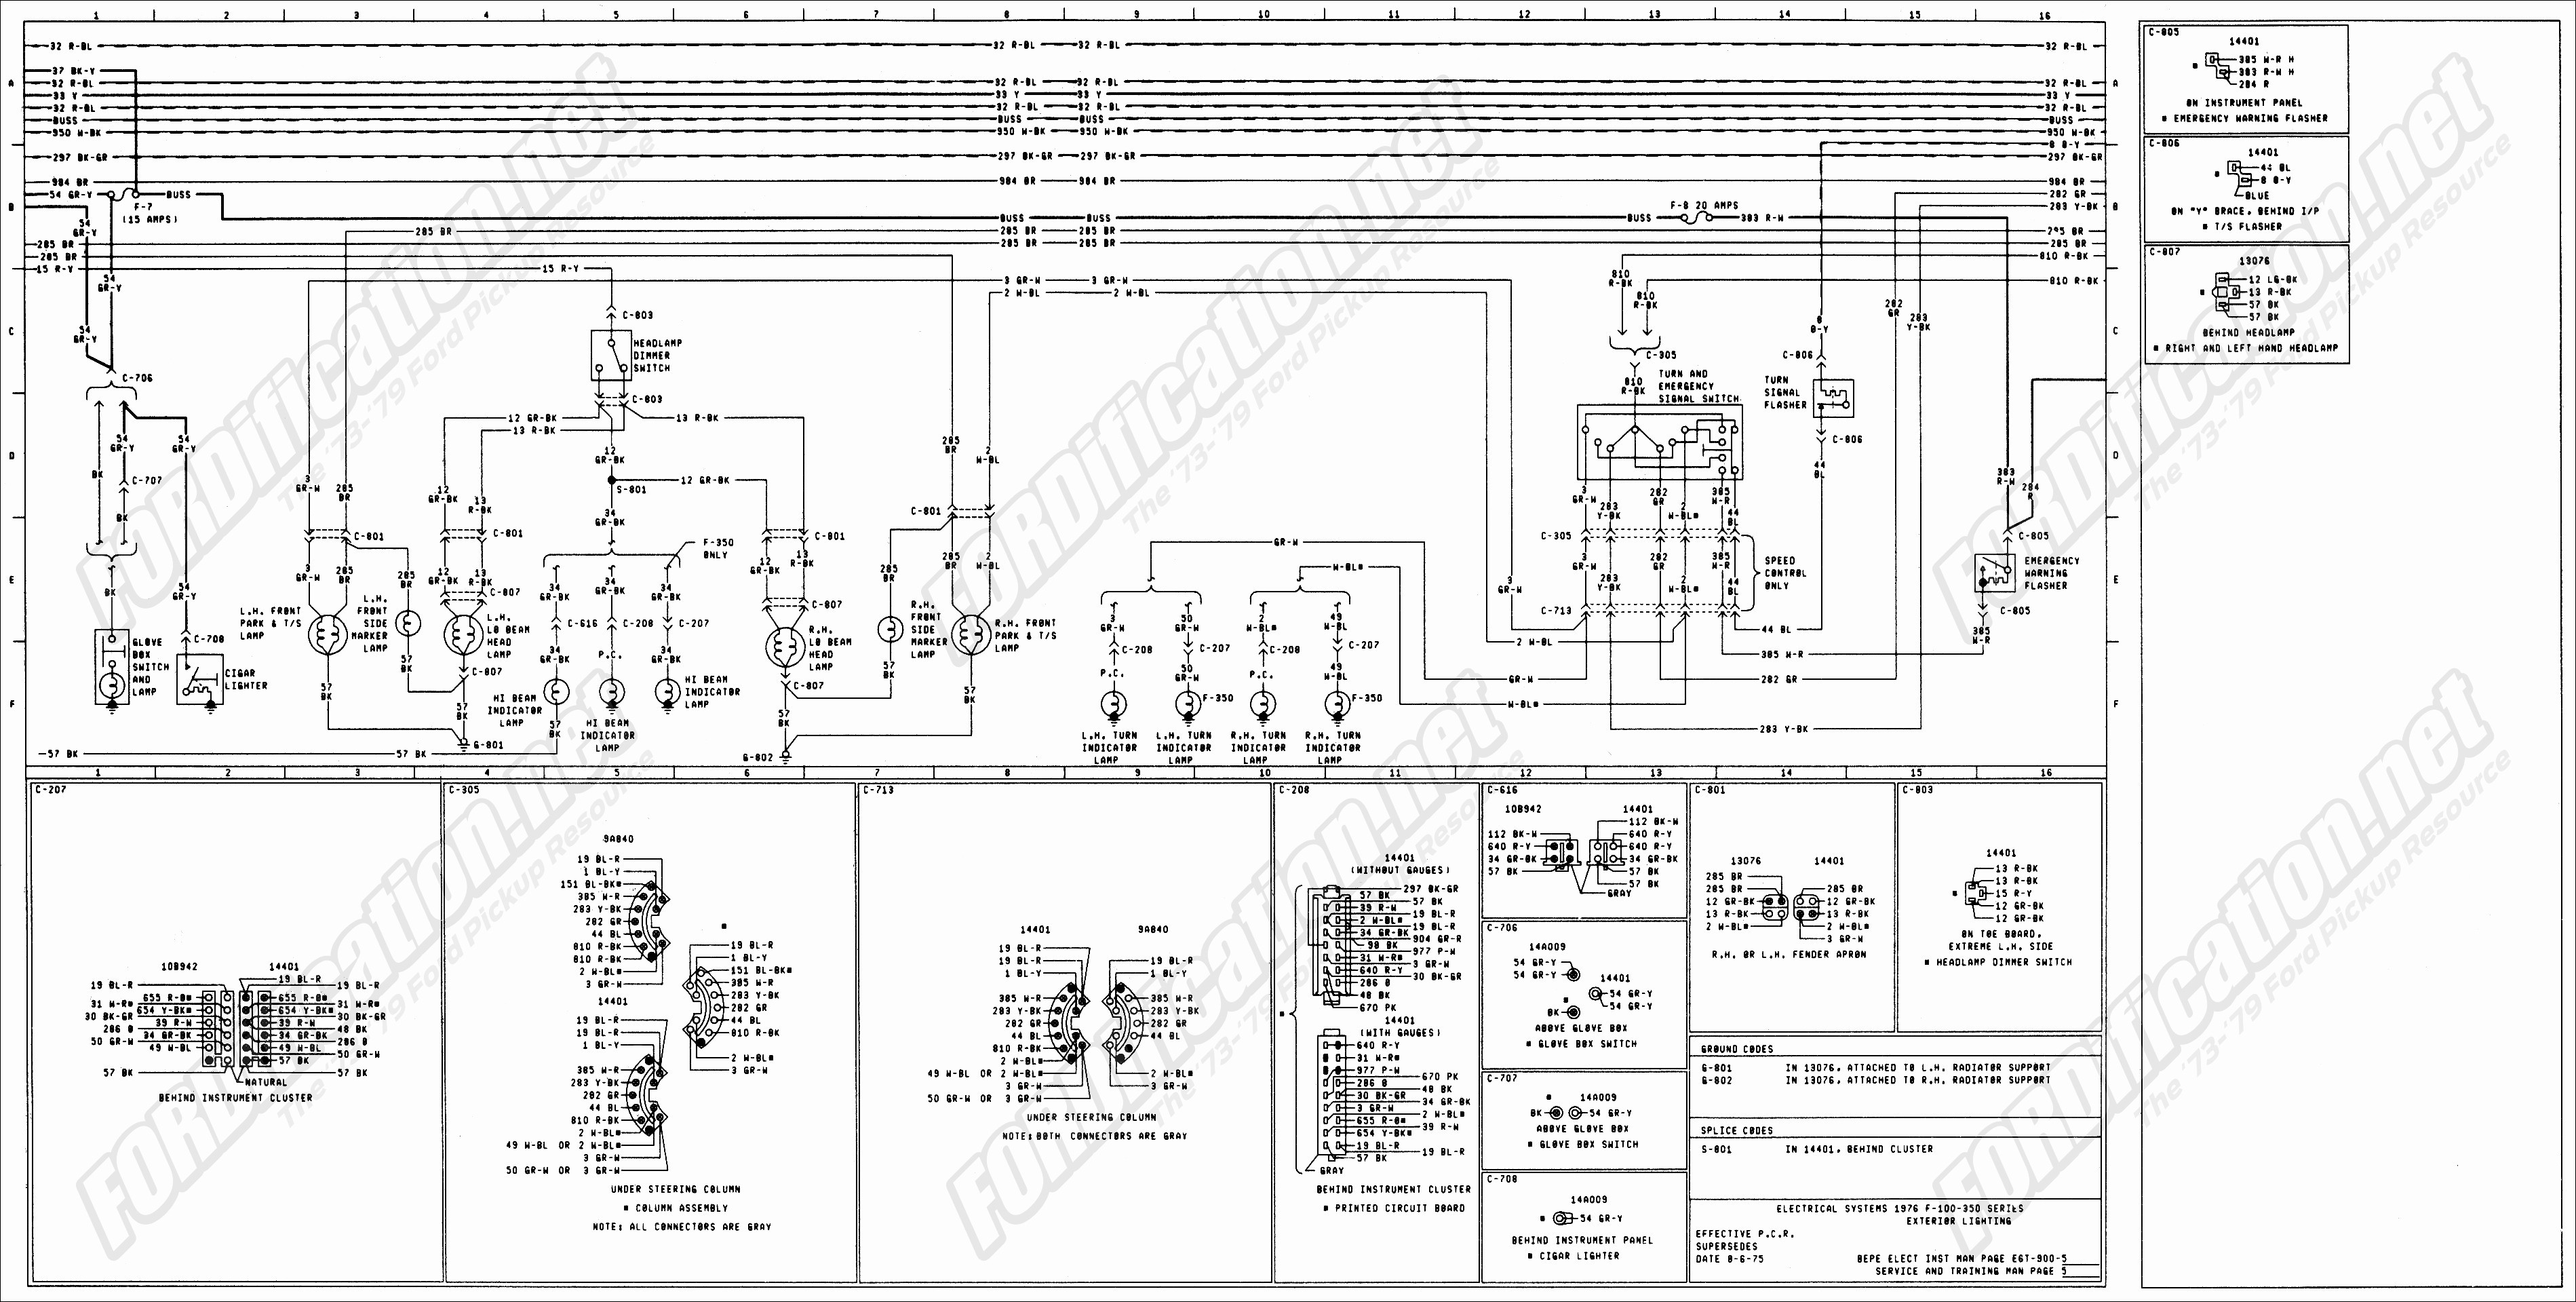 Wiring Diagram for Turn Signals ford Truck Wiring Diagrams Simple ford F150 Wiring Diagrams Best Of Wiring Diagram for Turn Signals